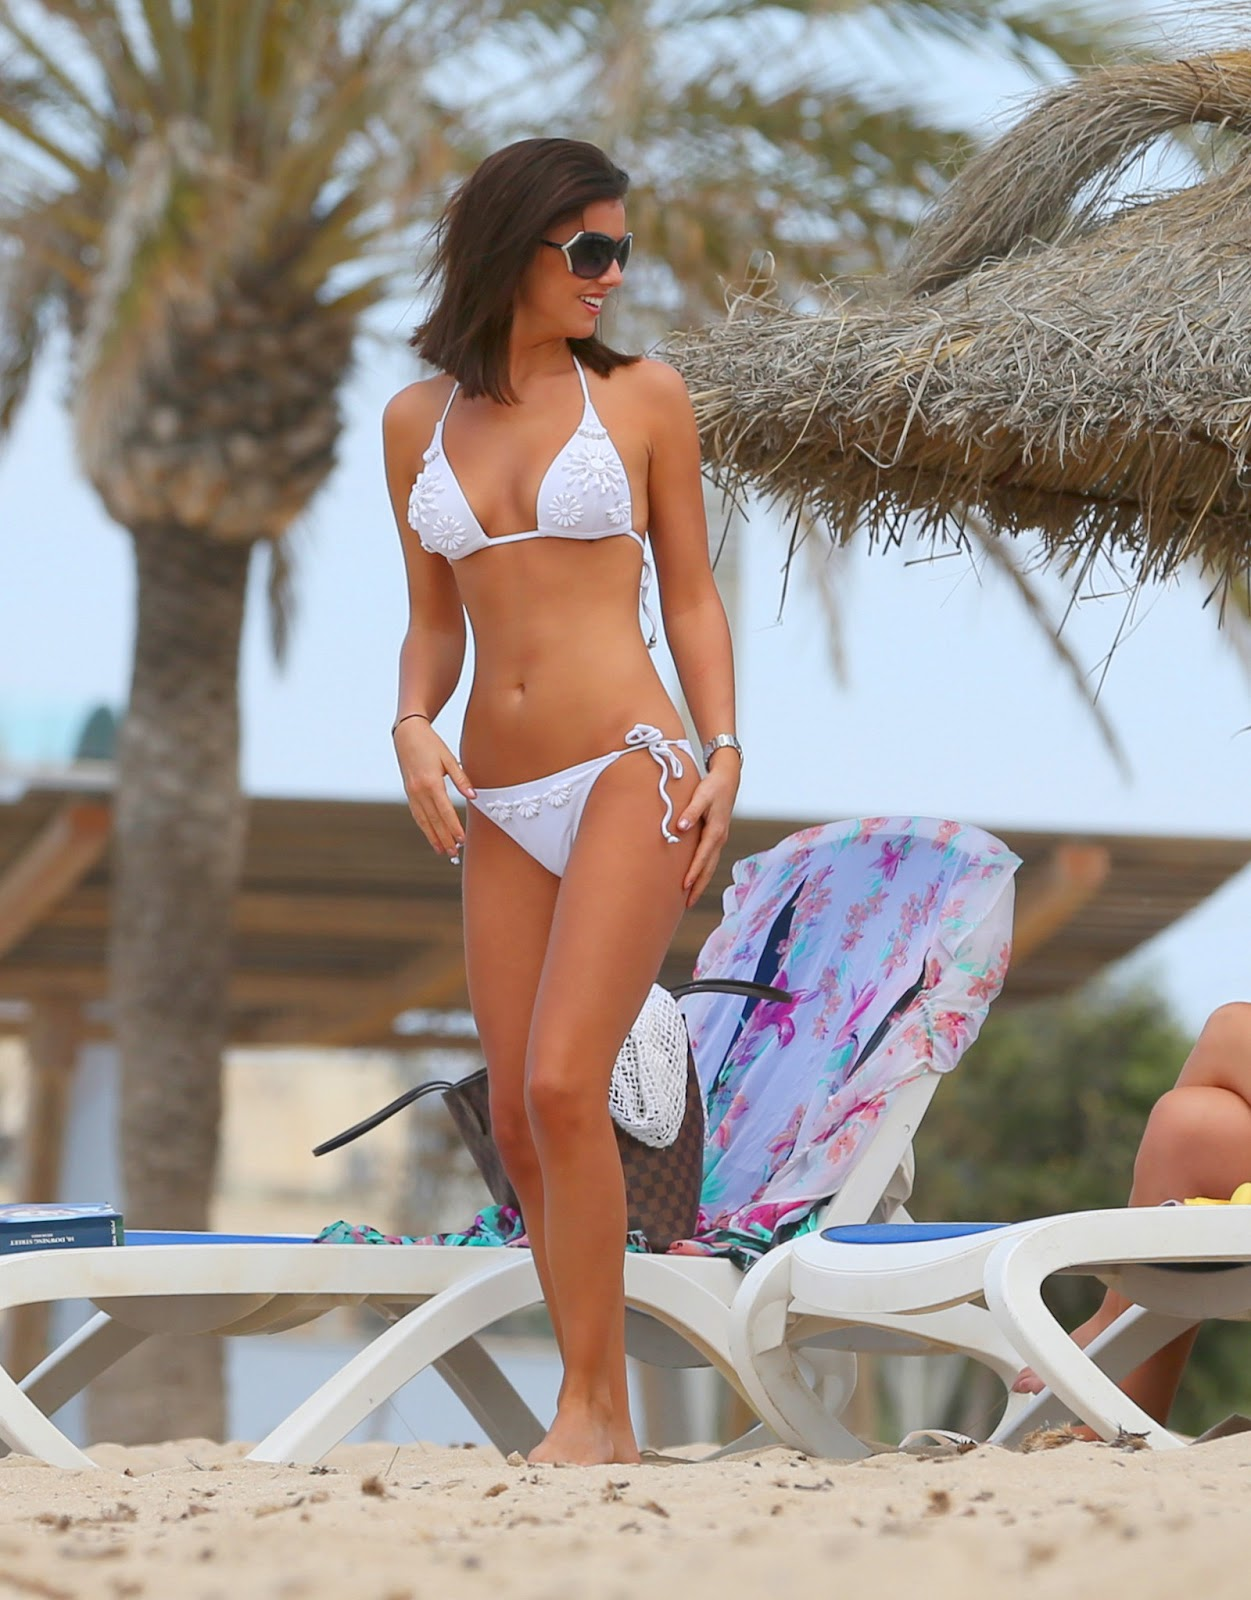 Lucy Mecklenburgh nude (96 fotos) Hot, 2019, butt